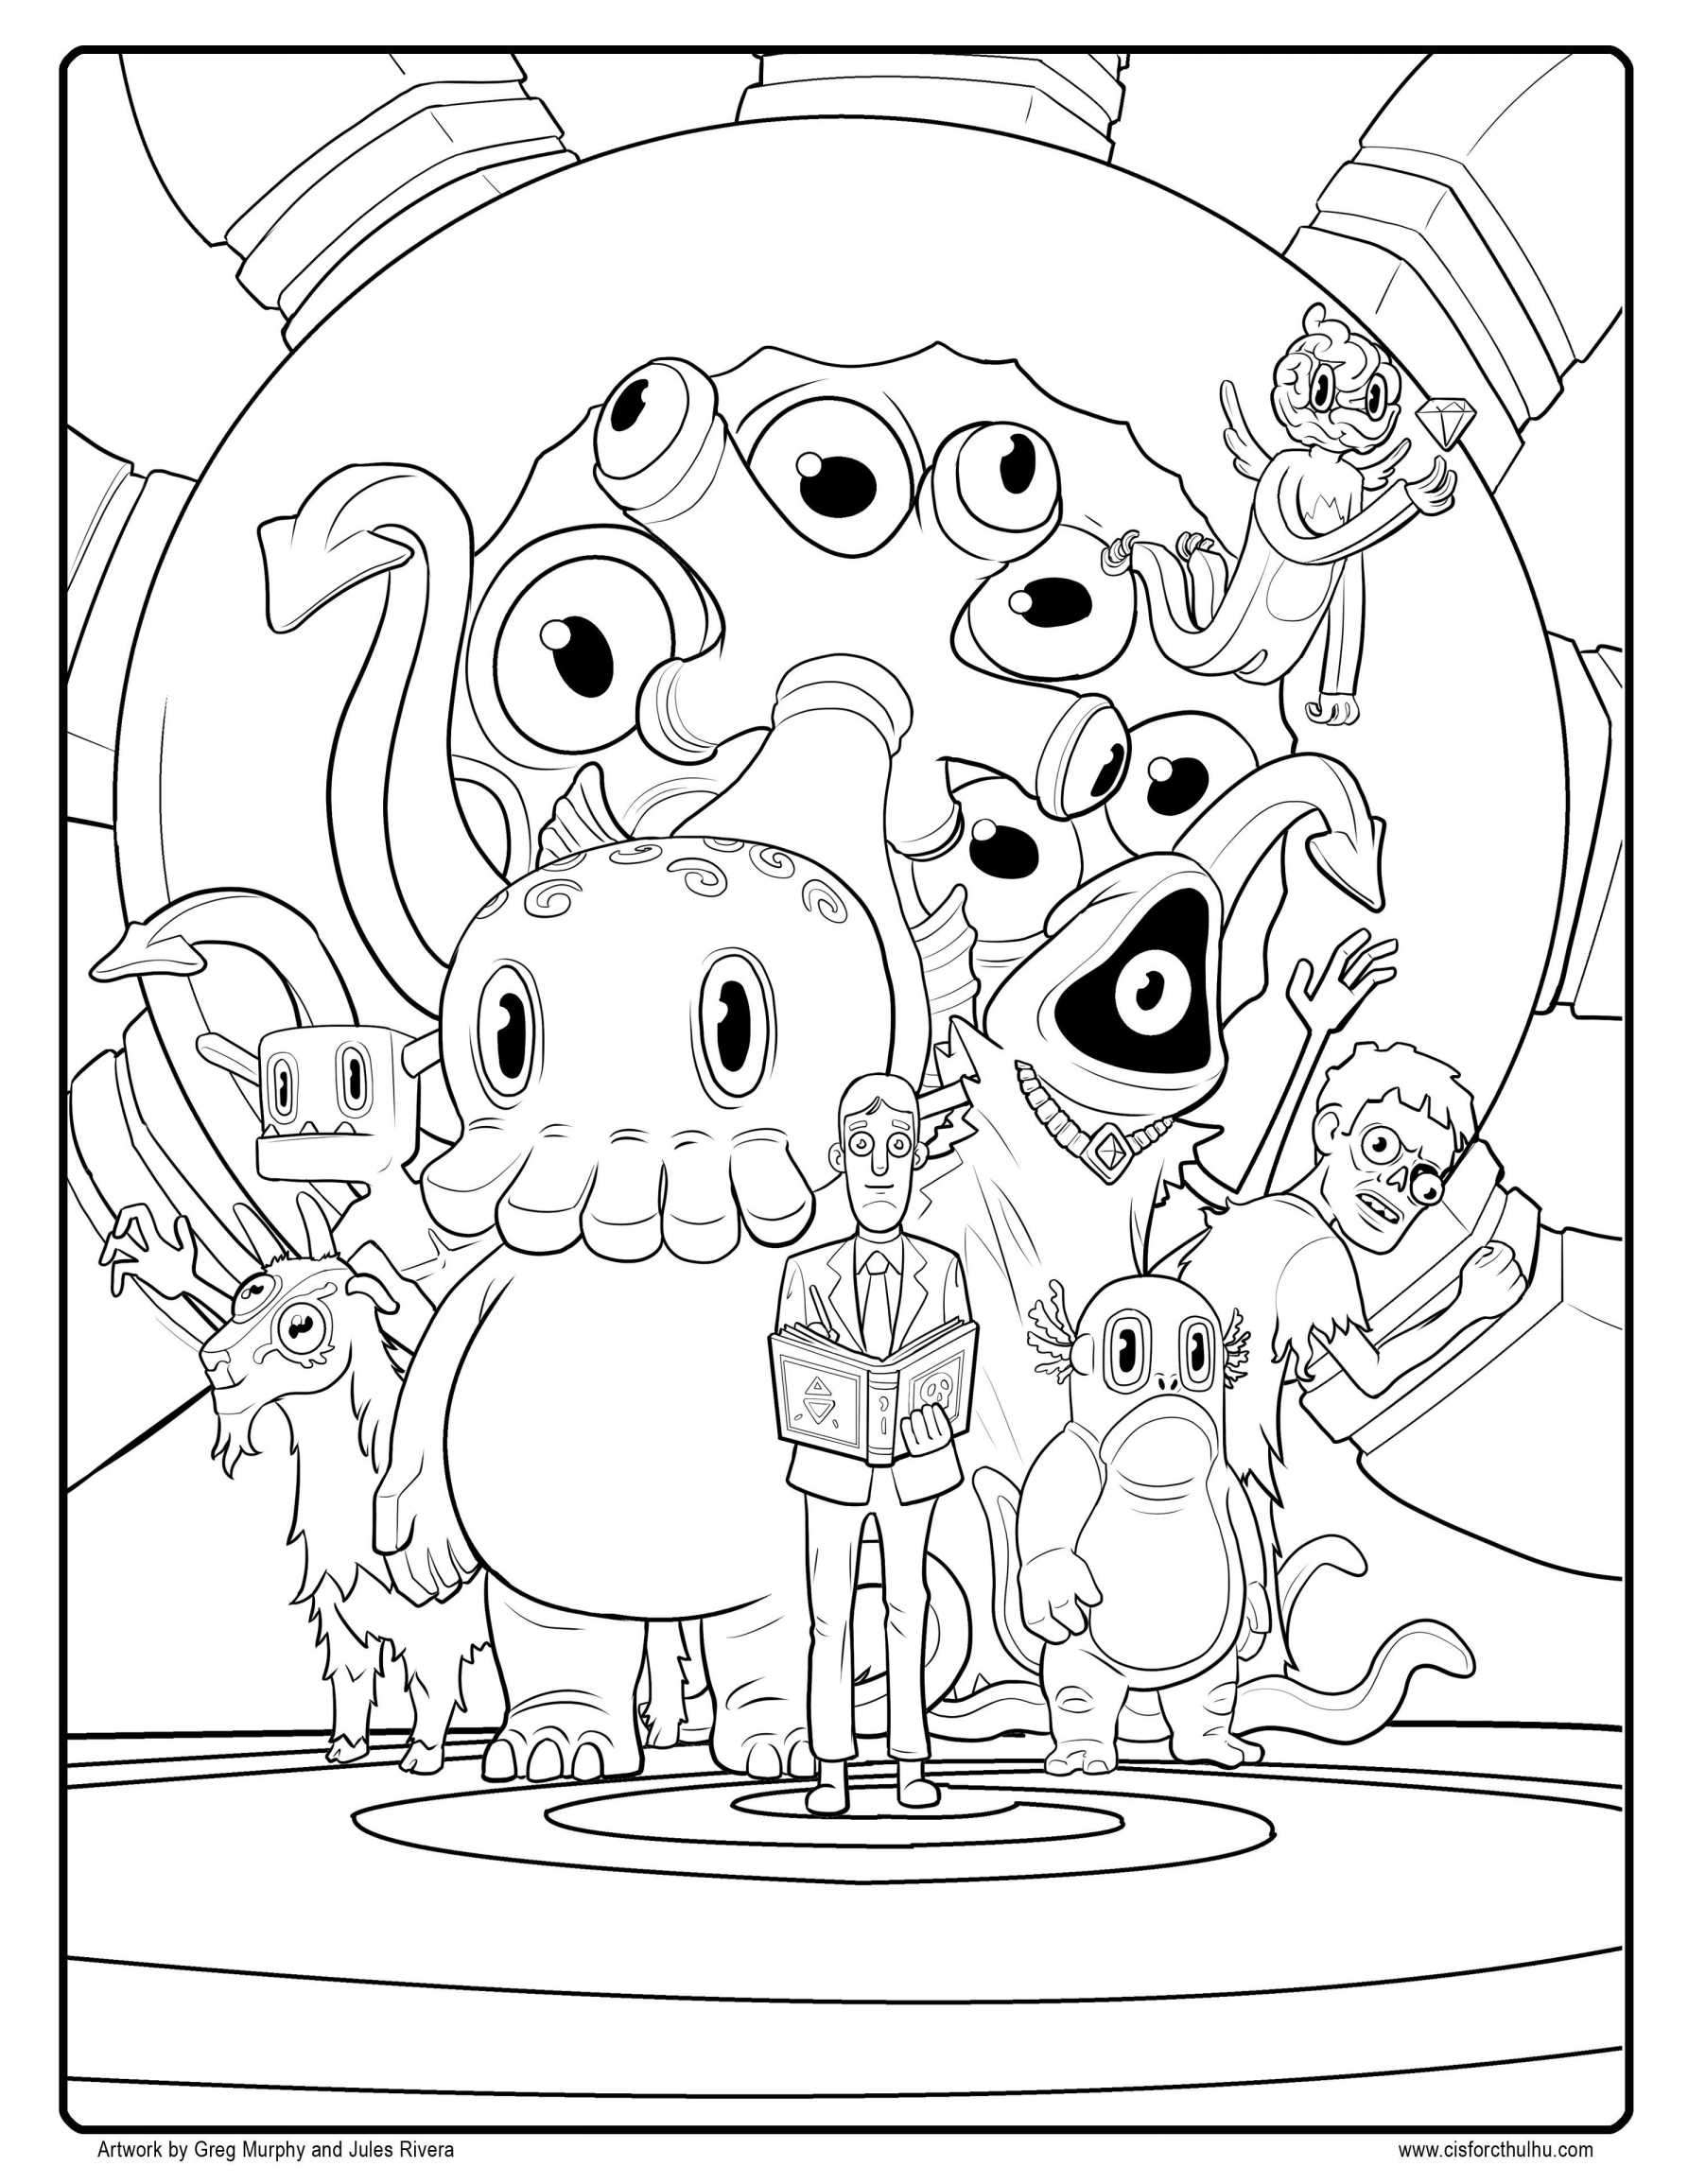 Snoopy Christmas Coloring Pages  Collection 10n - Free For kids